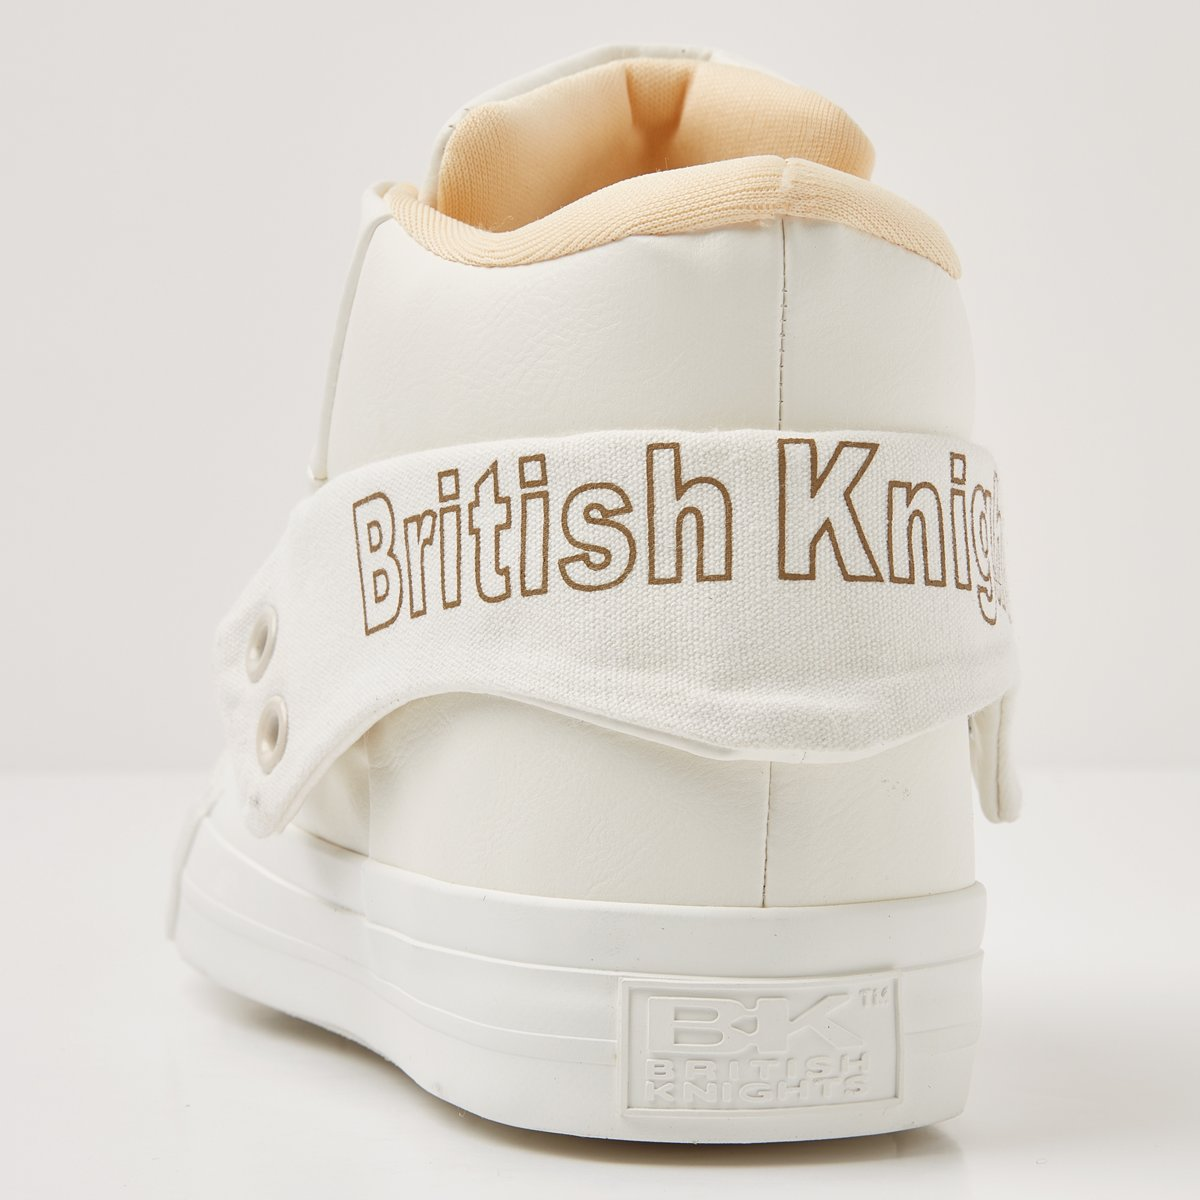 96d9dc3f8fb bol.com | British Knights ROCO-SNT DAMES SNEAKERS HOOG, WHITE, 38,  SYNTHETISCH